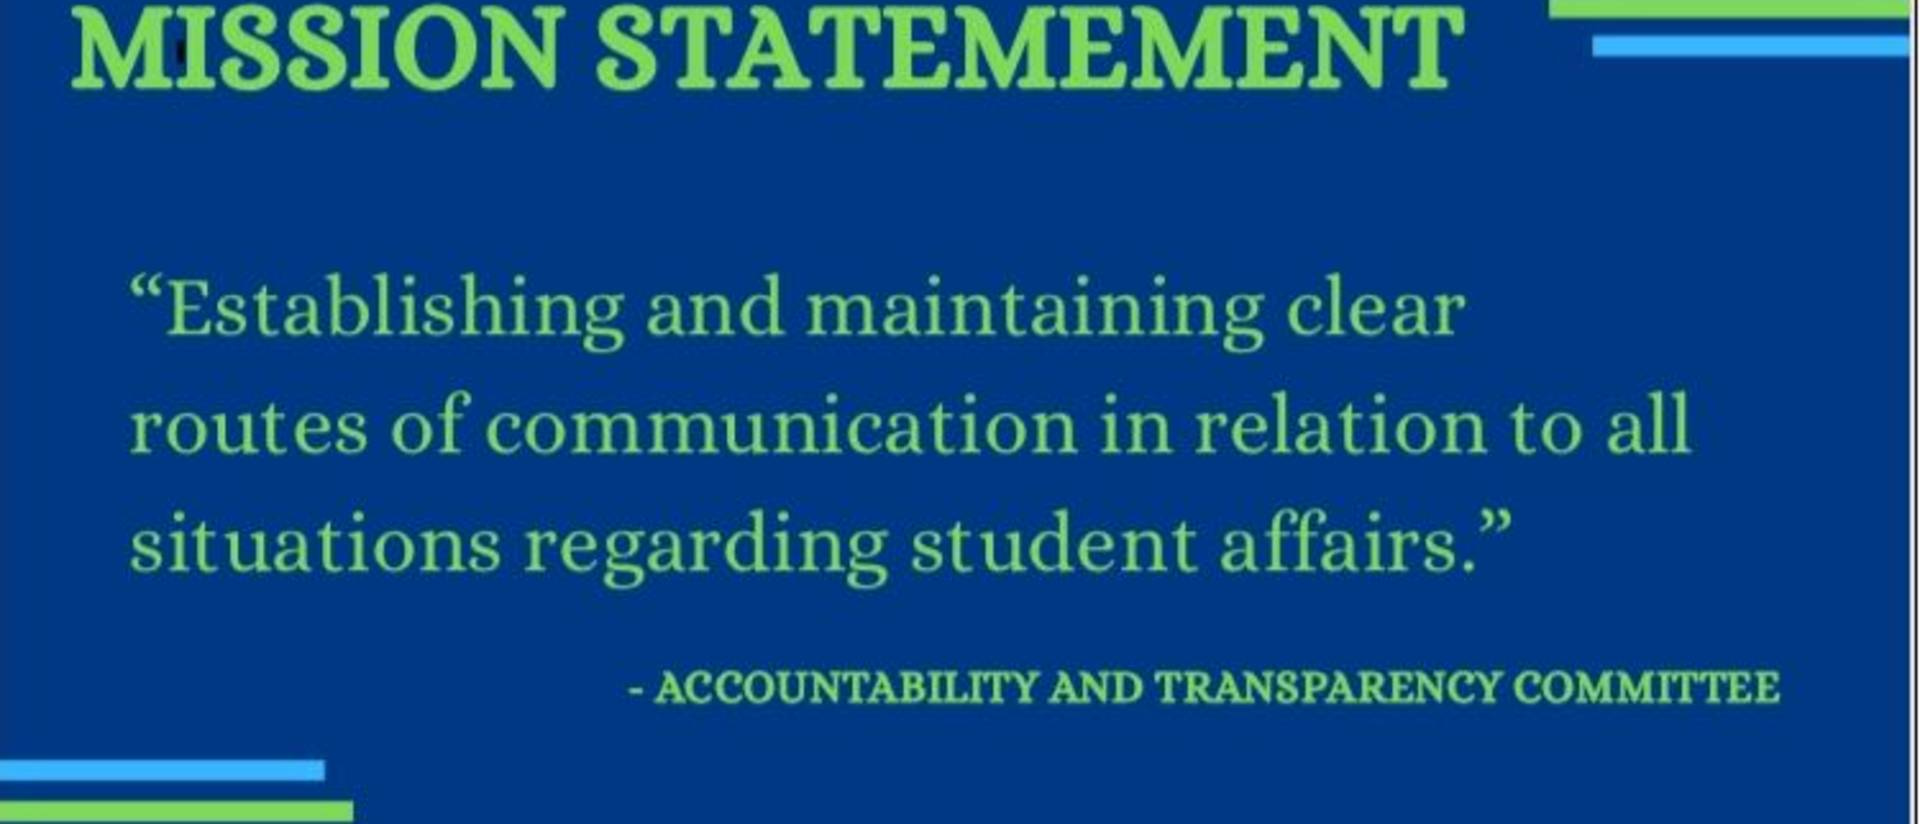 Accountability and Transparency Committee